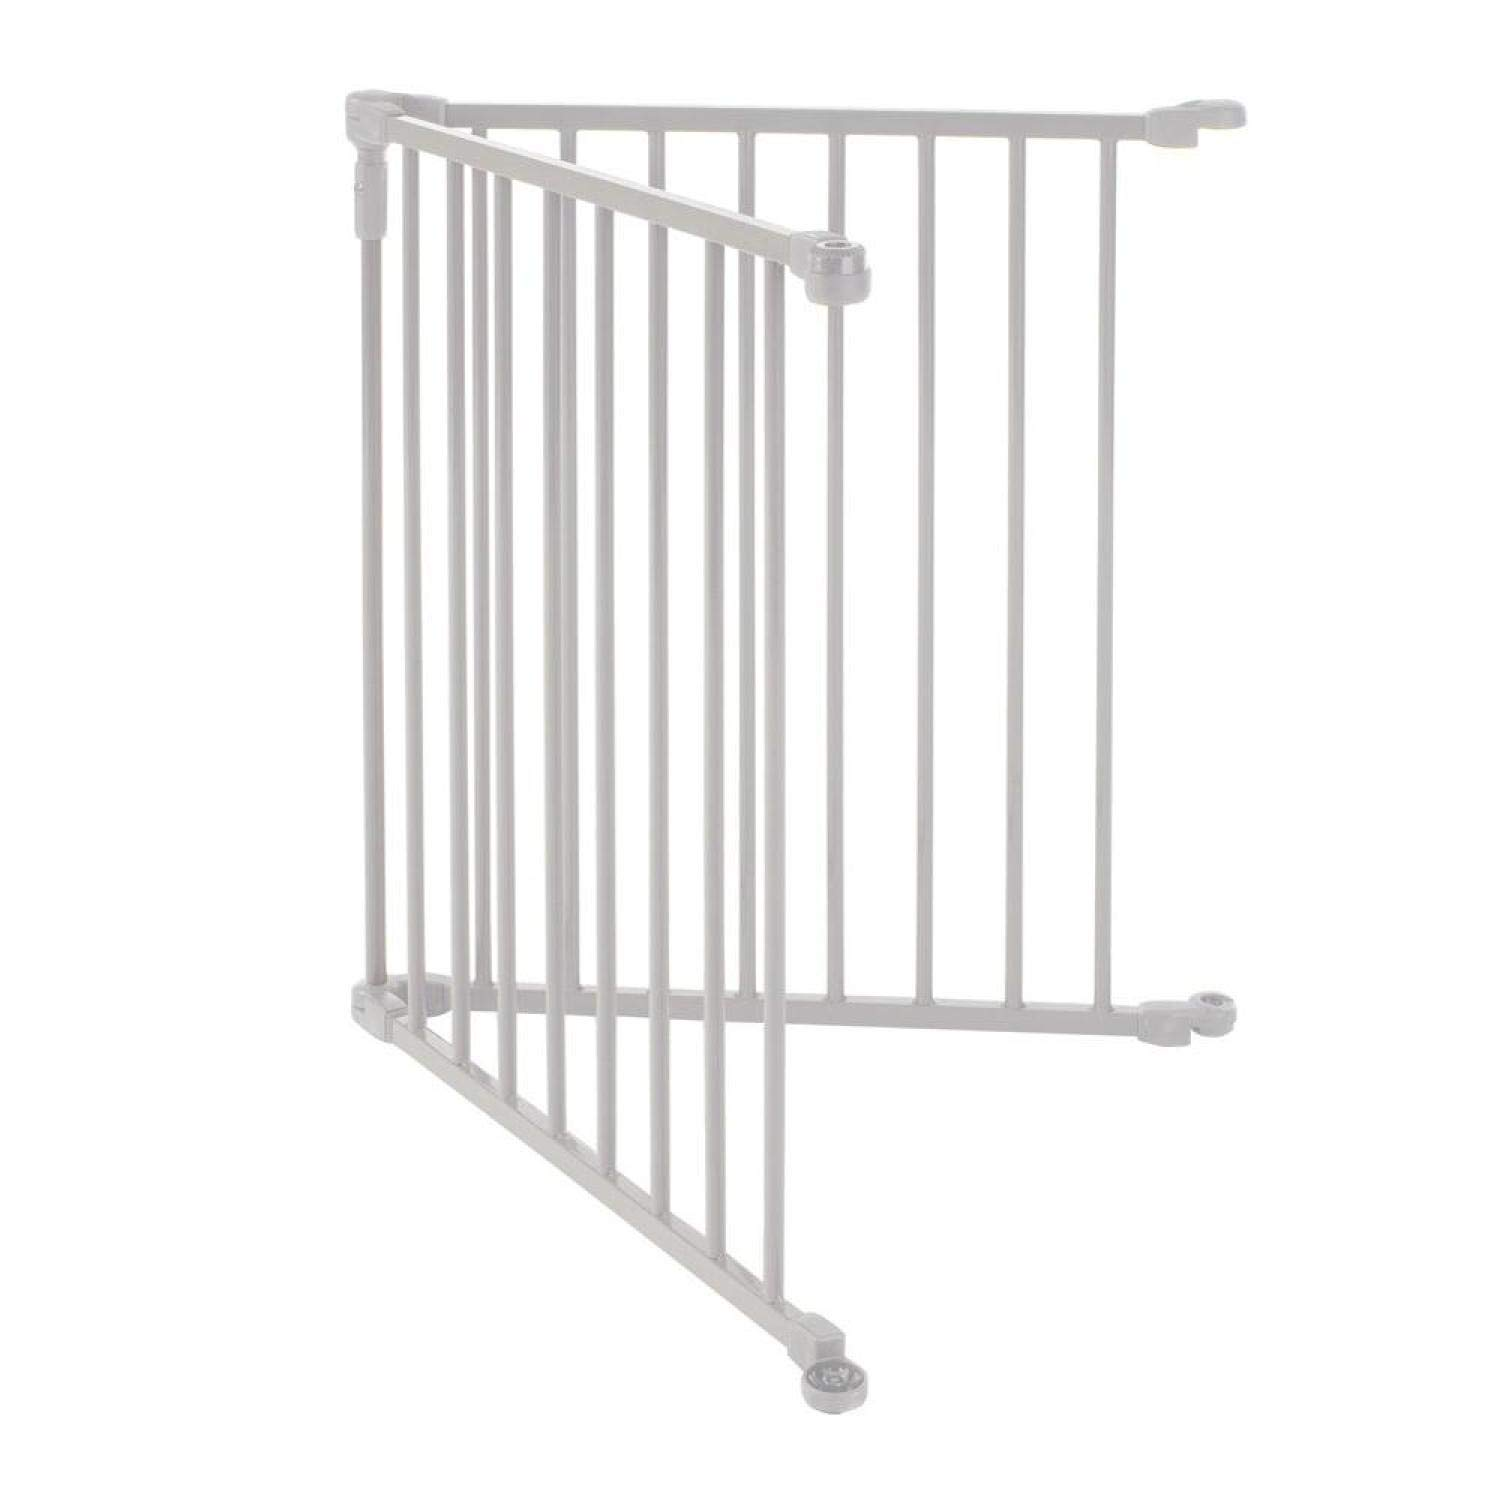 North States 2-Panel Extension for 3-in-1 Metal Superyard Adds up to 48 for an Extra-Wide gate or Play Yard 48 Width, Beige